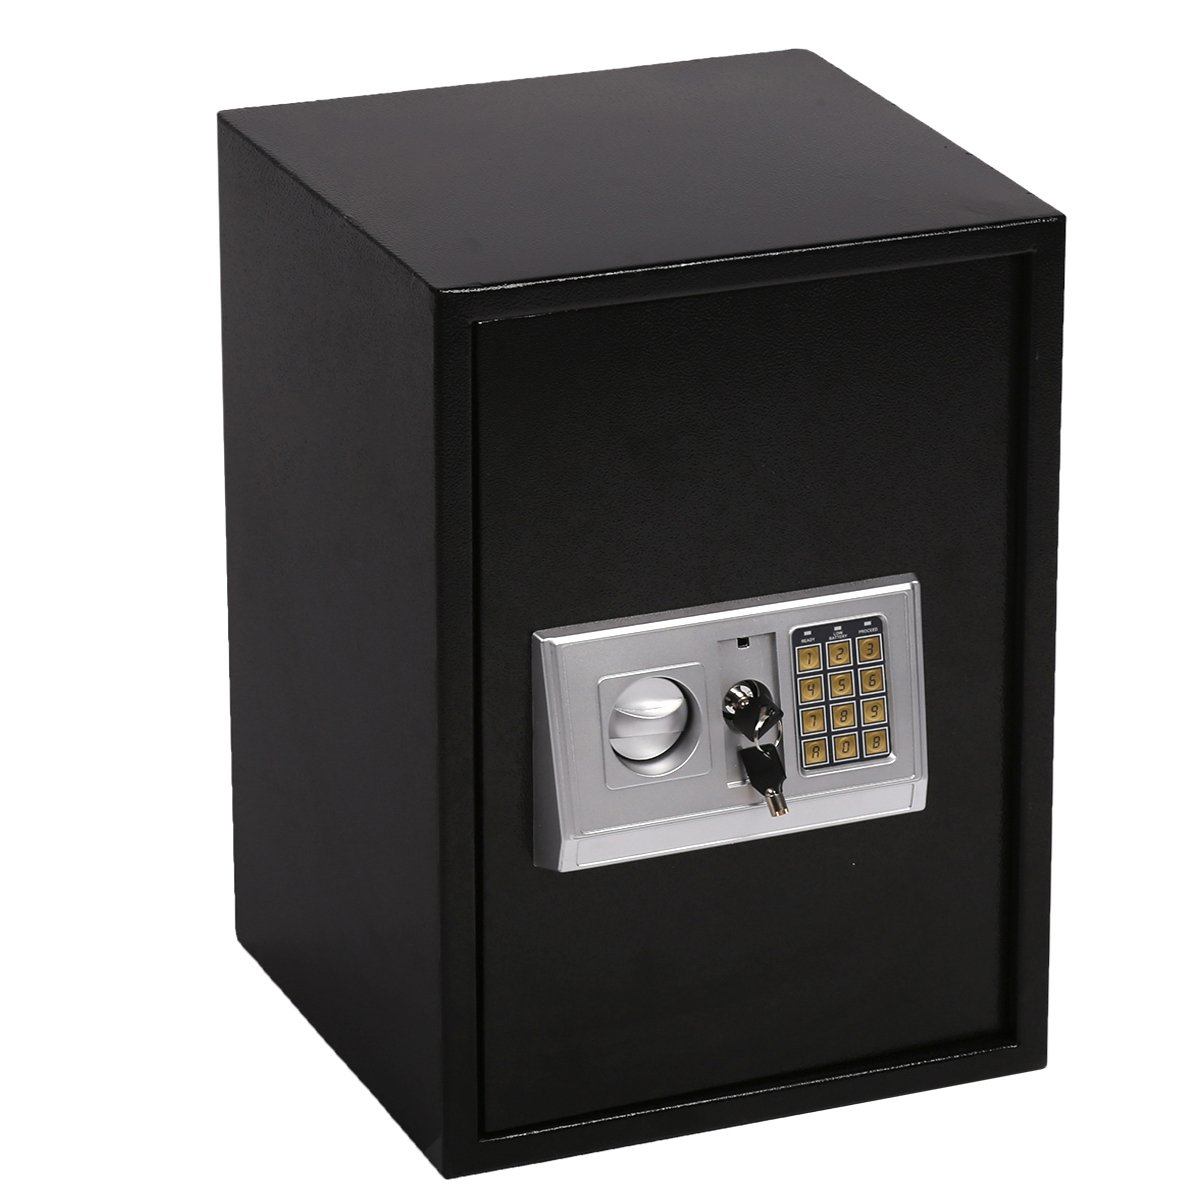 Safe Box,Lock Box Electronic Safe Box,Combination Security Cabinet Digital Safe Box 1.8 CF Large for Office Home Hotel Gun Jewelry Money Safe